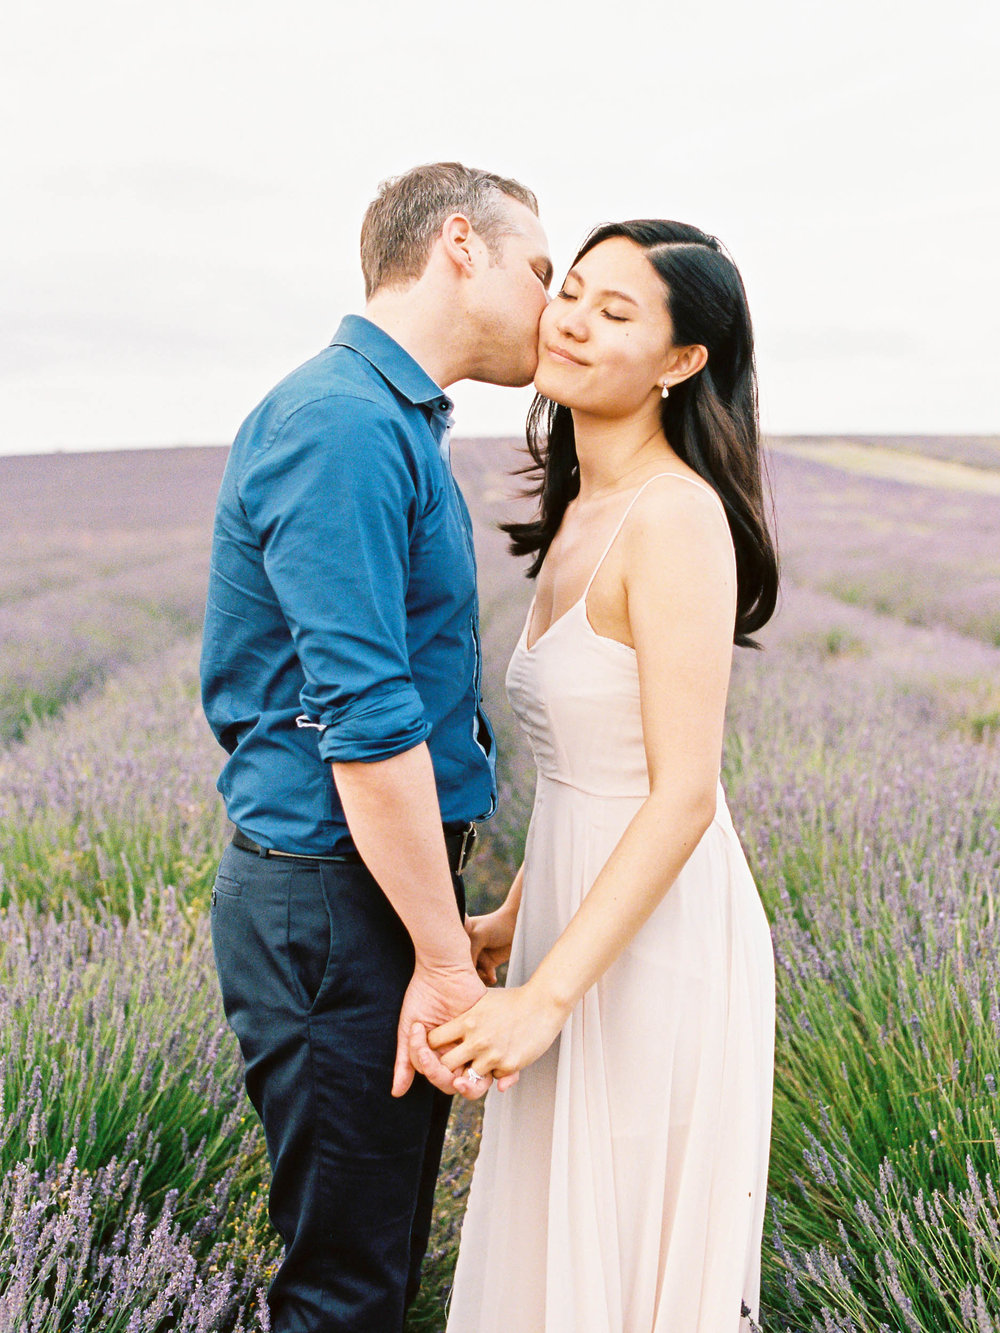 Amy O'Boyle Photography- Destination & UK Fine Art Film Wedding Photographer- Hitchin Lavender Engagement Shoot-5.jpg